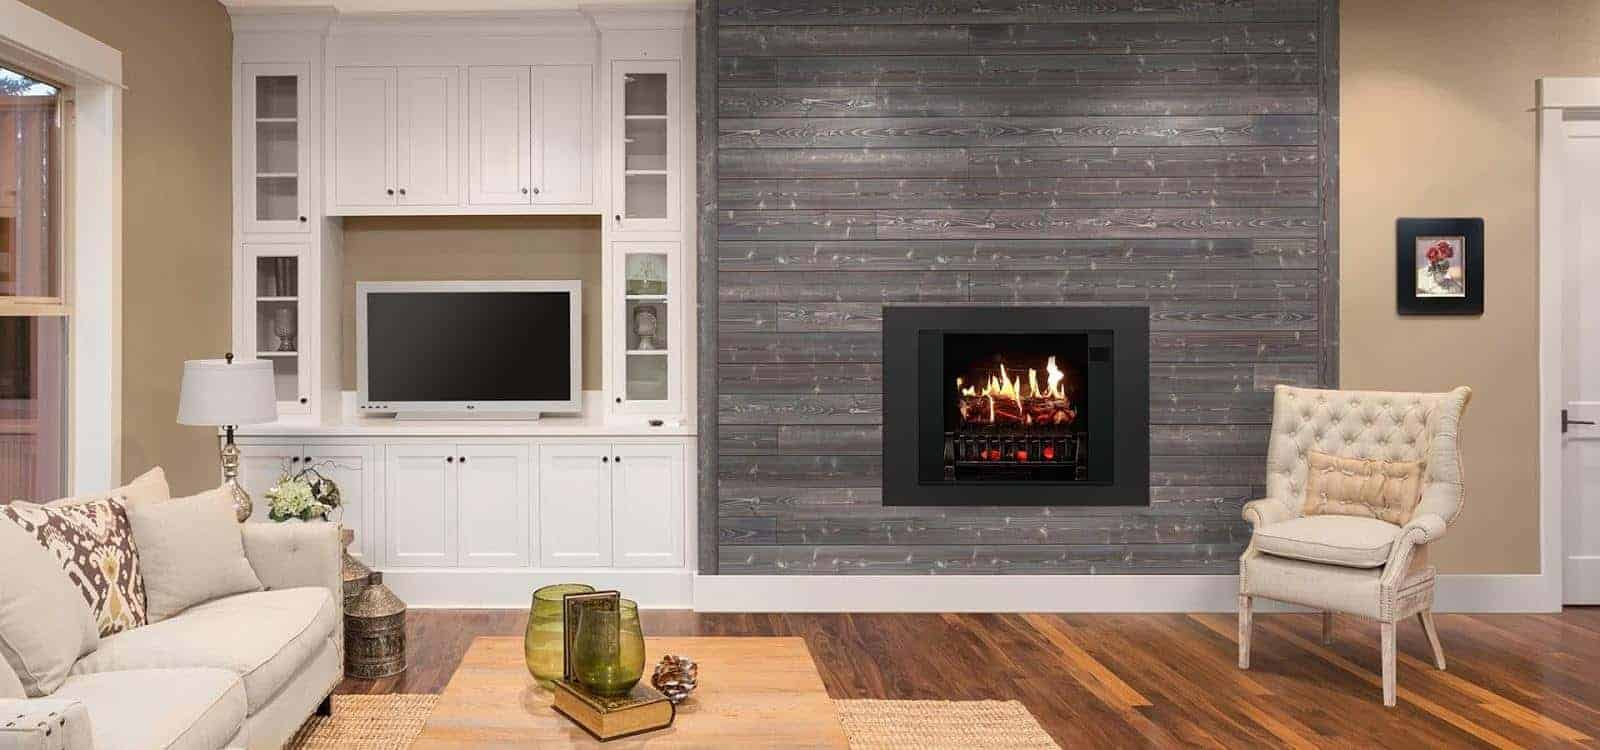 does an electric fireplace keep you warm